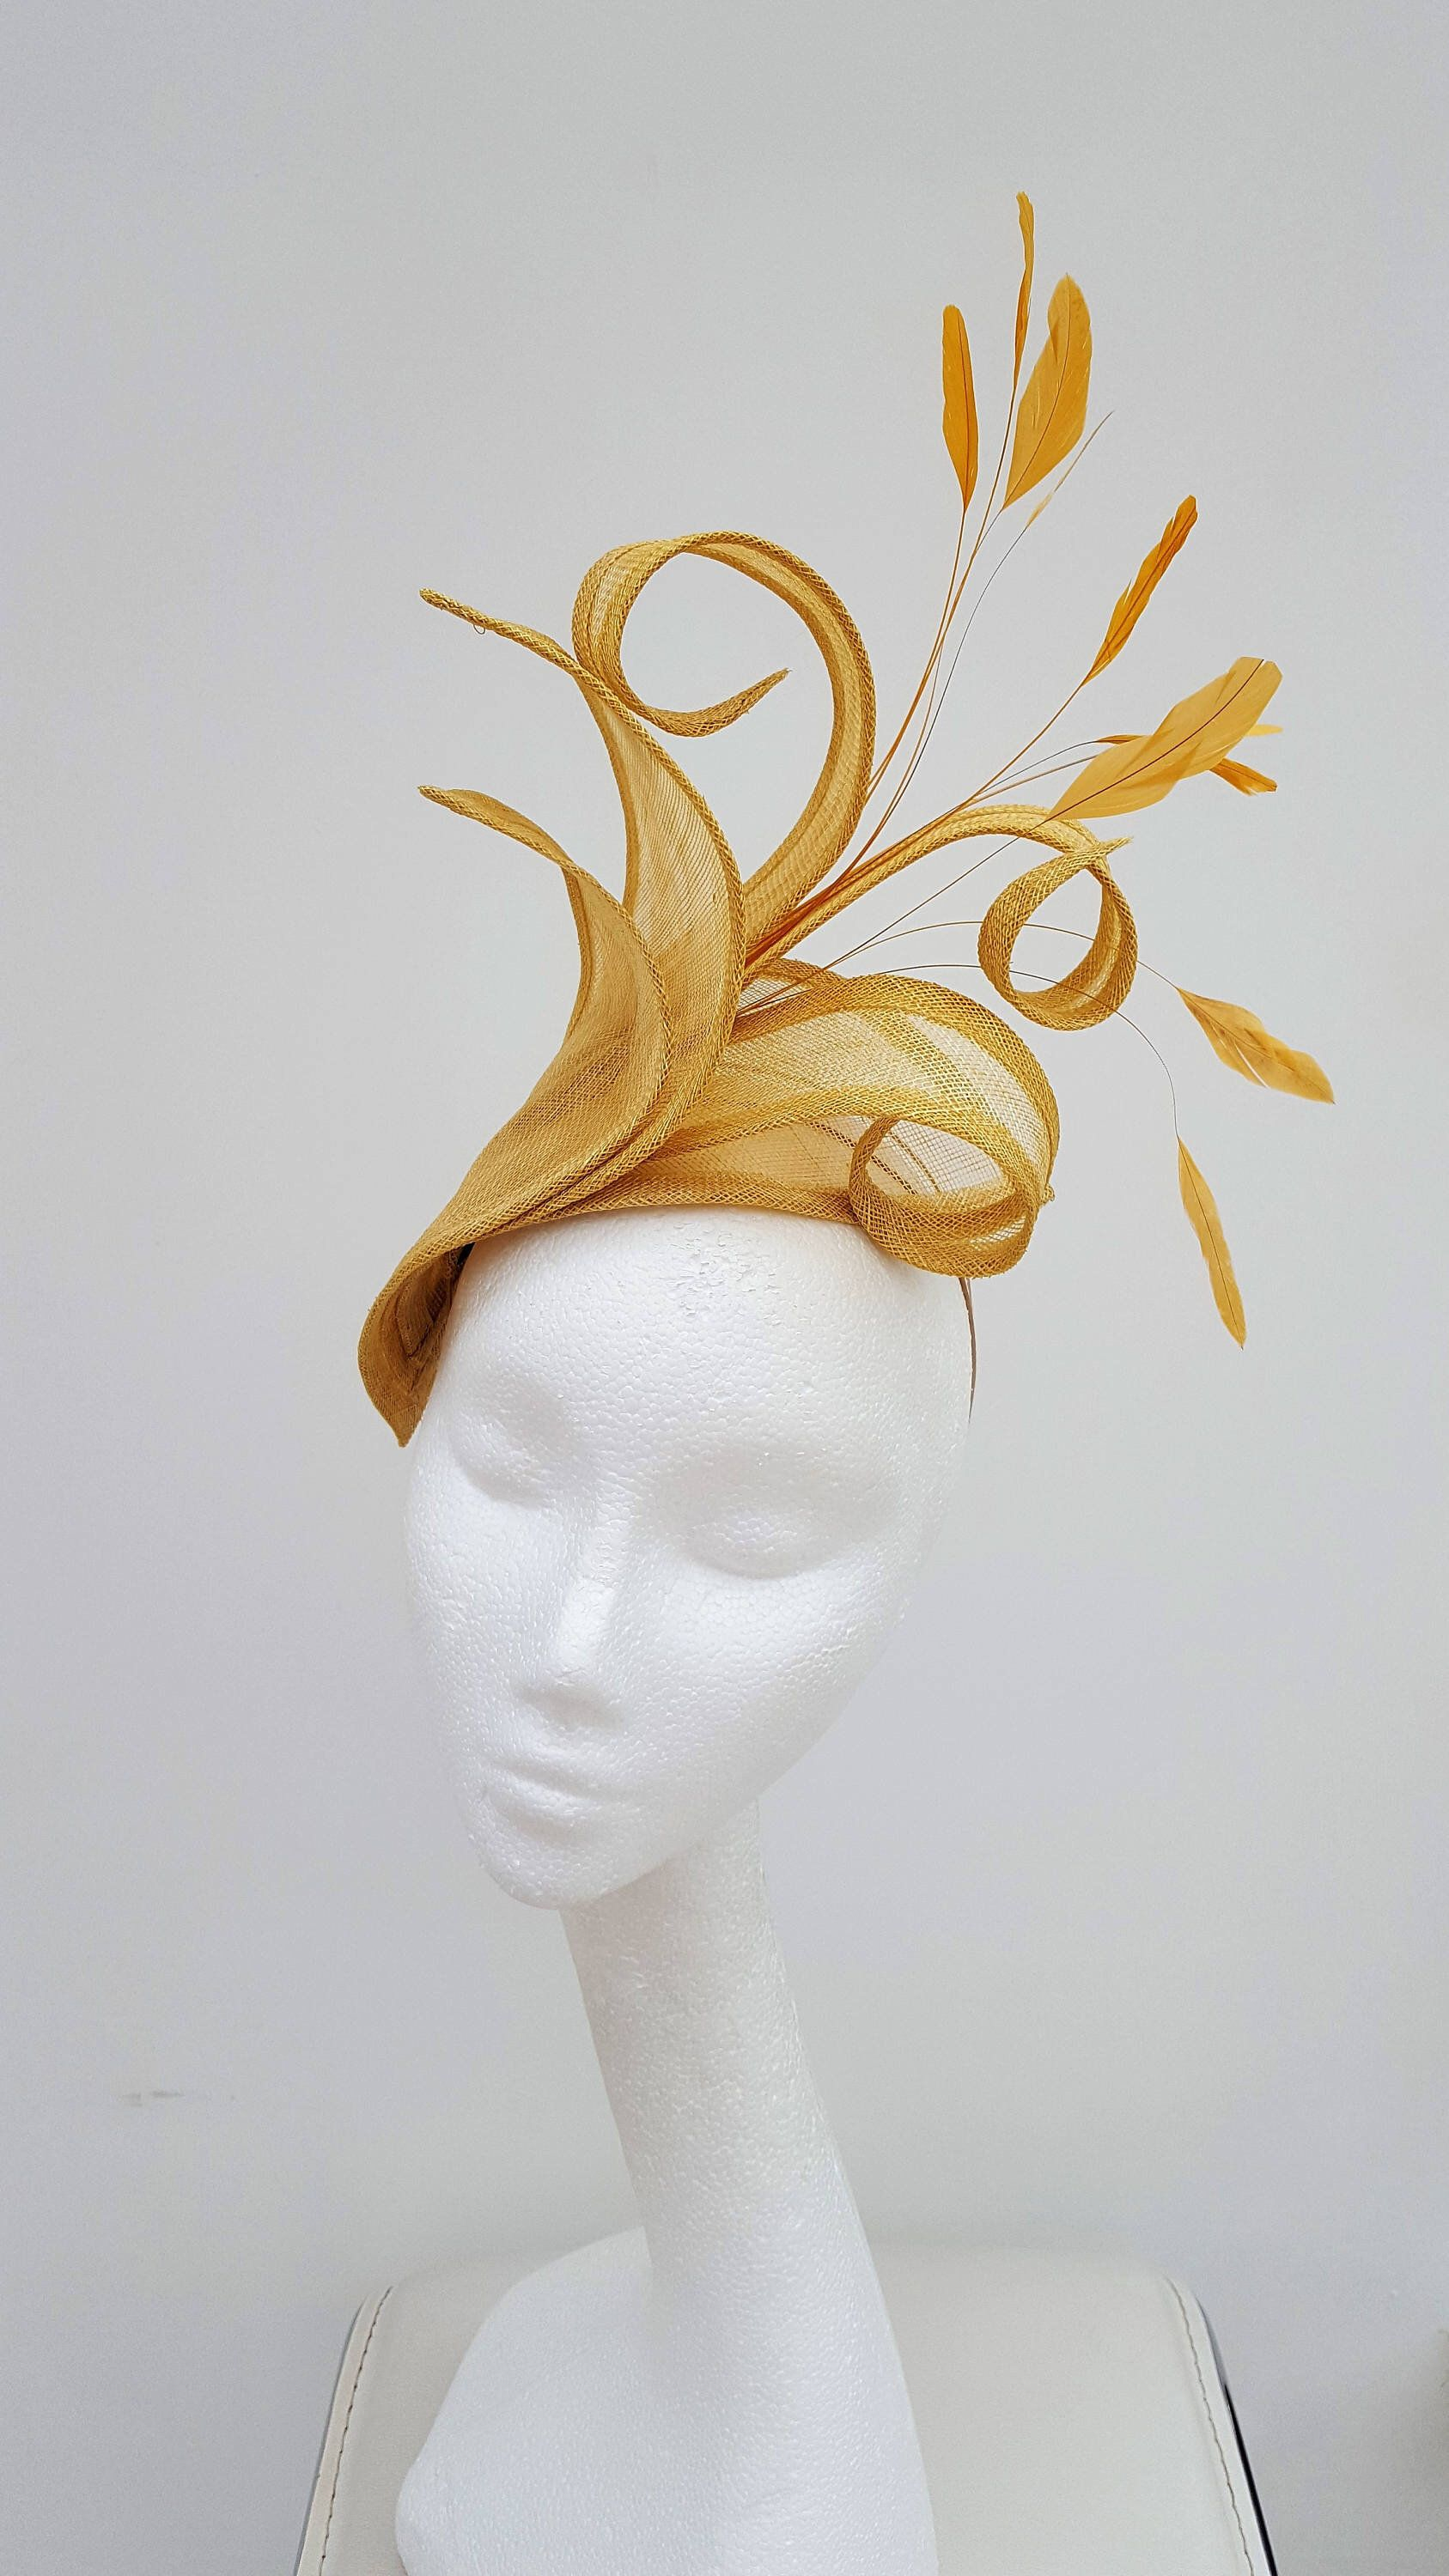 Gold Fascinator, Wedding Fascinator, Mother of the Bride hat, Royal Ascot Fascinator, Kentucky Derby Hat, Ladies Day Headpiece,Melbourne Cup